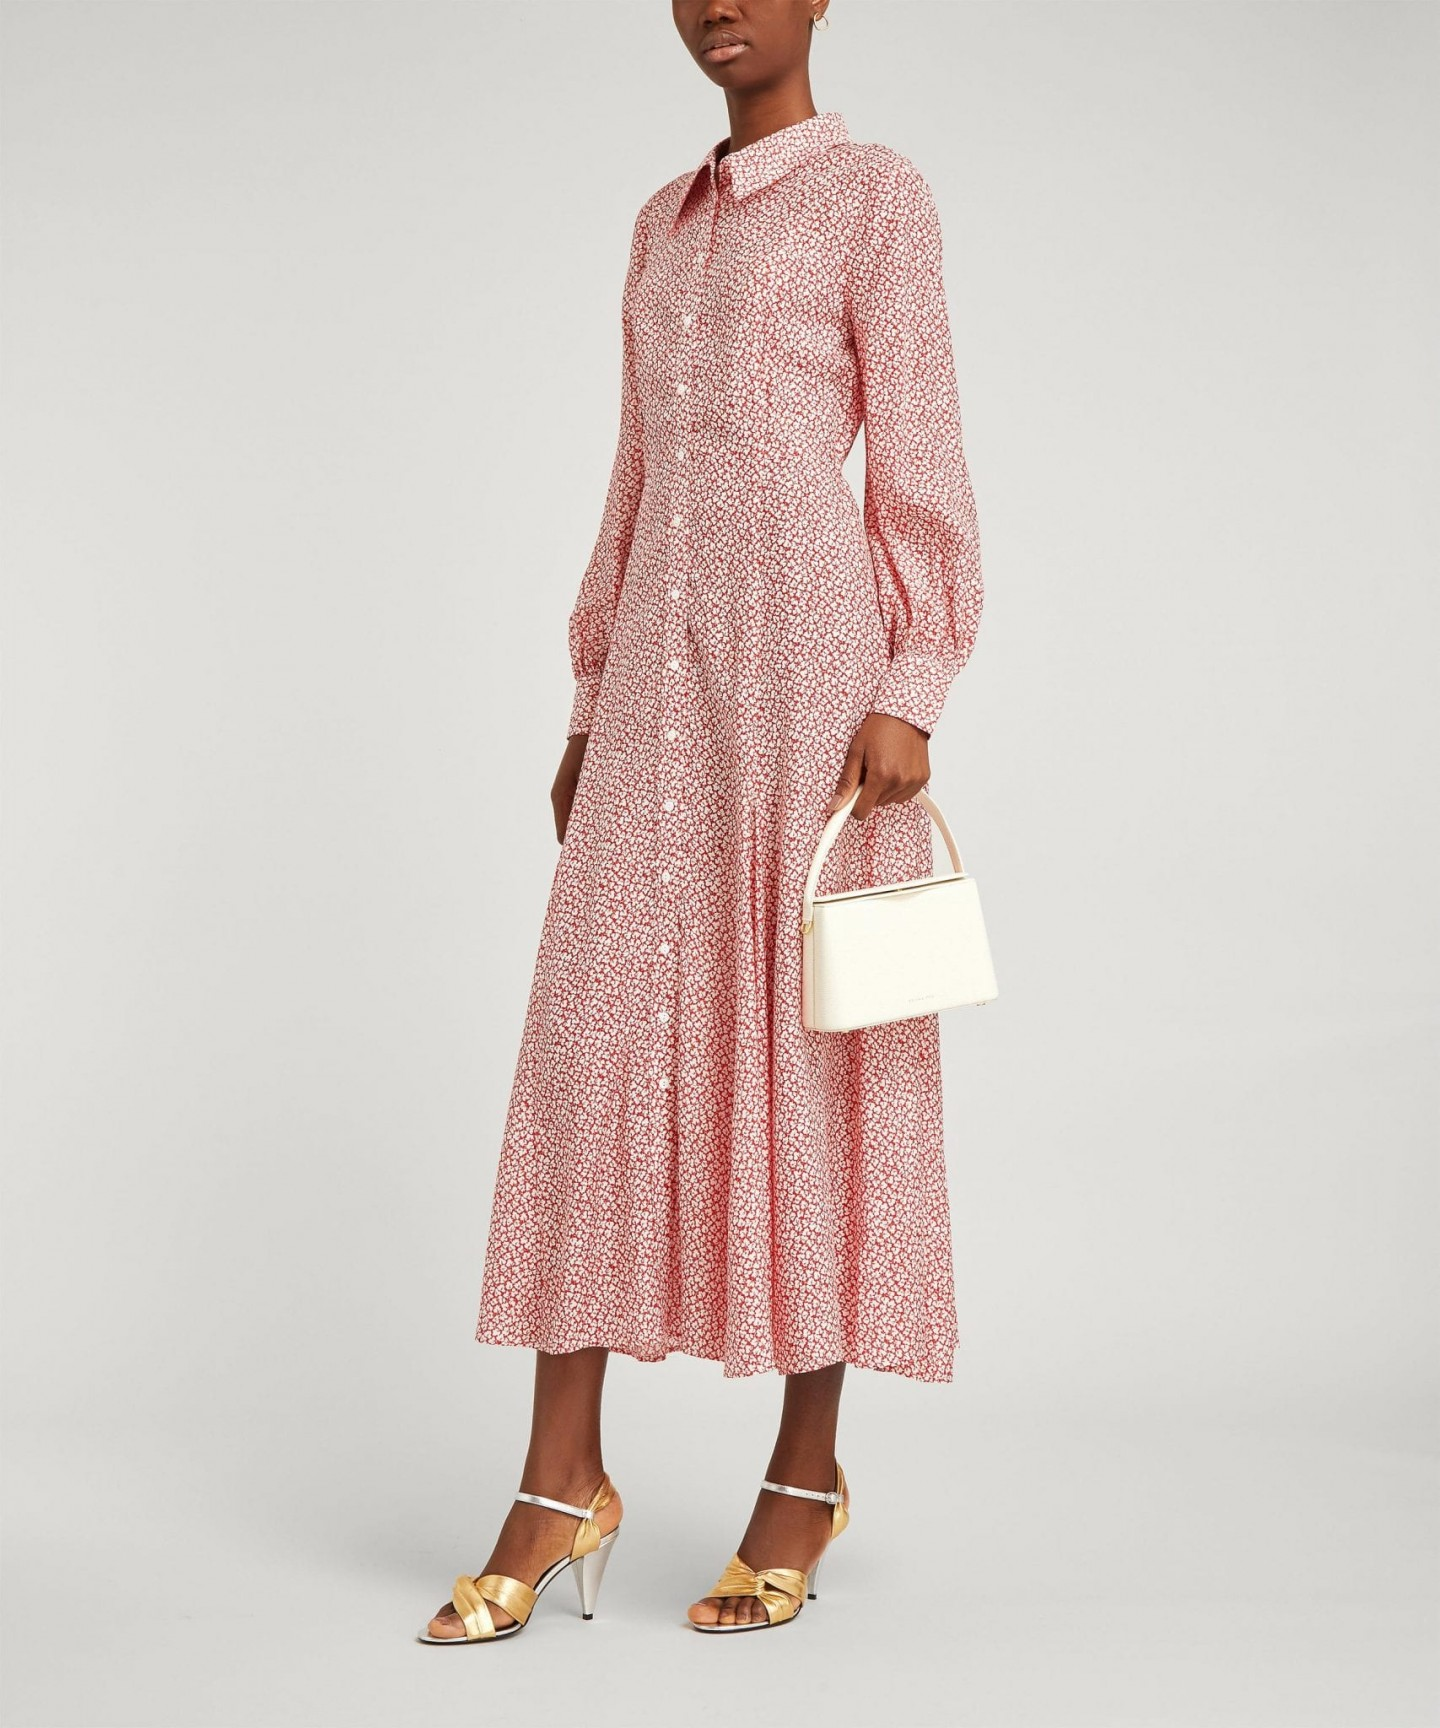 RIXO Maddison Button-Down Maxi Shirt-Dress